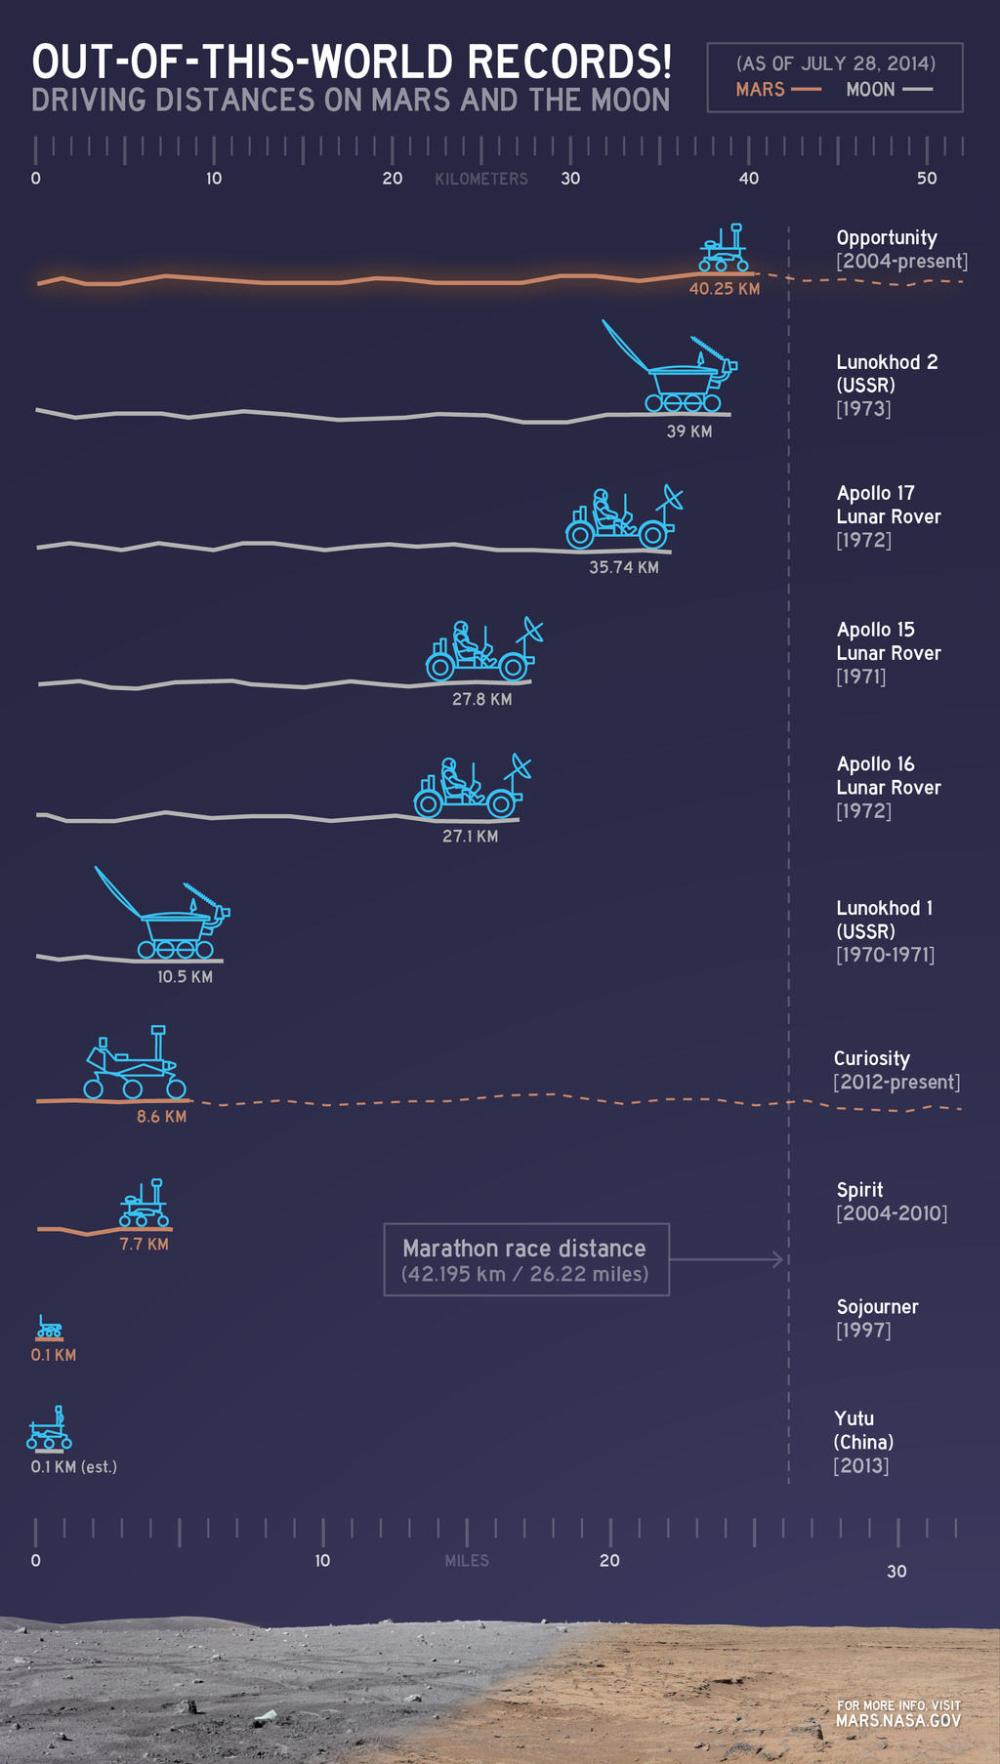 This chart illustrates comparisons among the distances driven by various wheeled vehicles on the surface of Earth's moon and Mars. (NASA/JPL-Caltech)